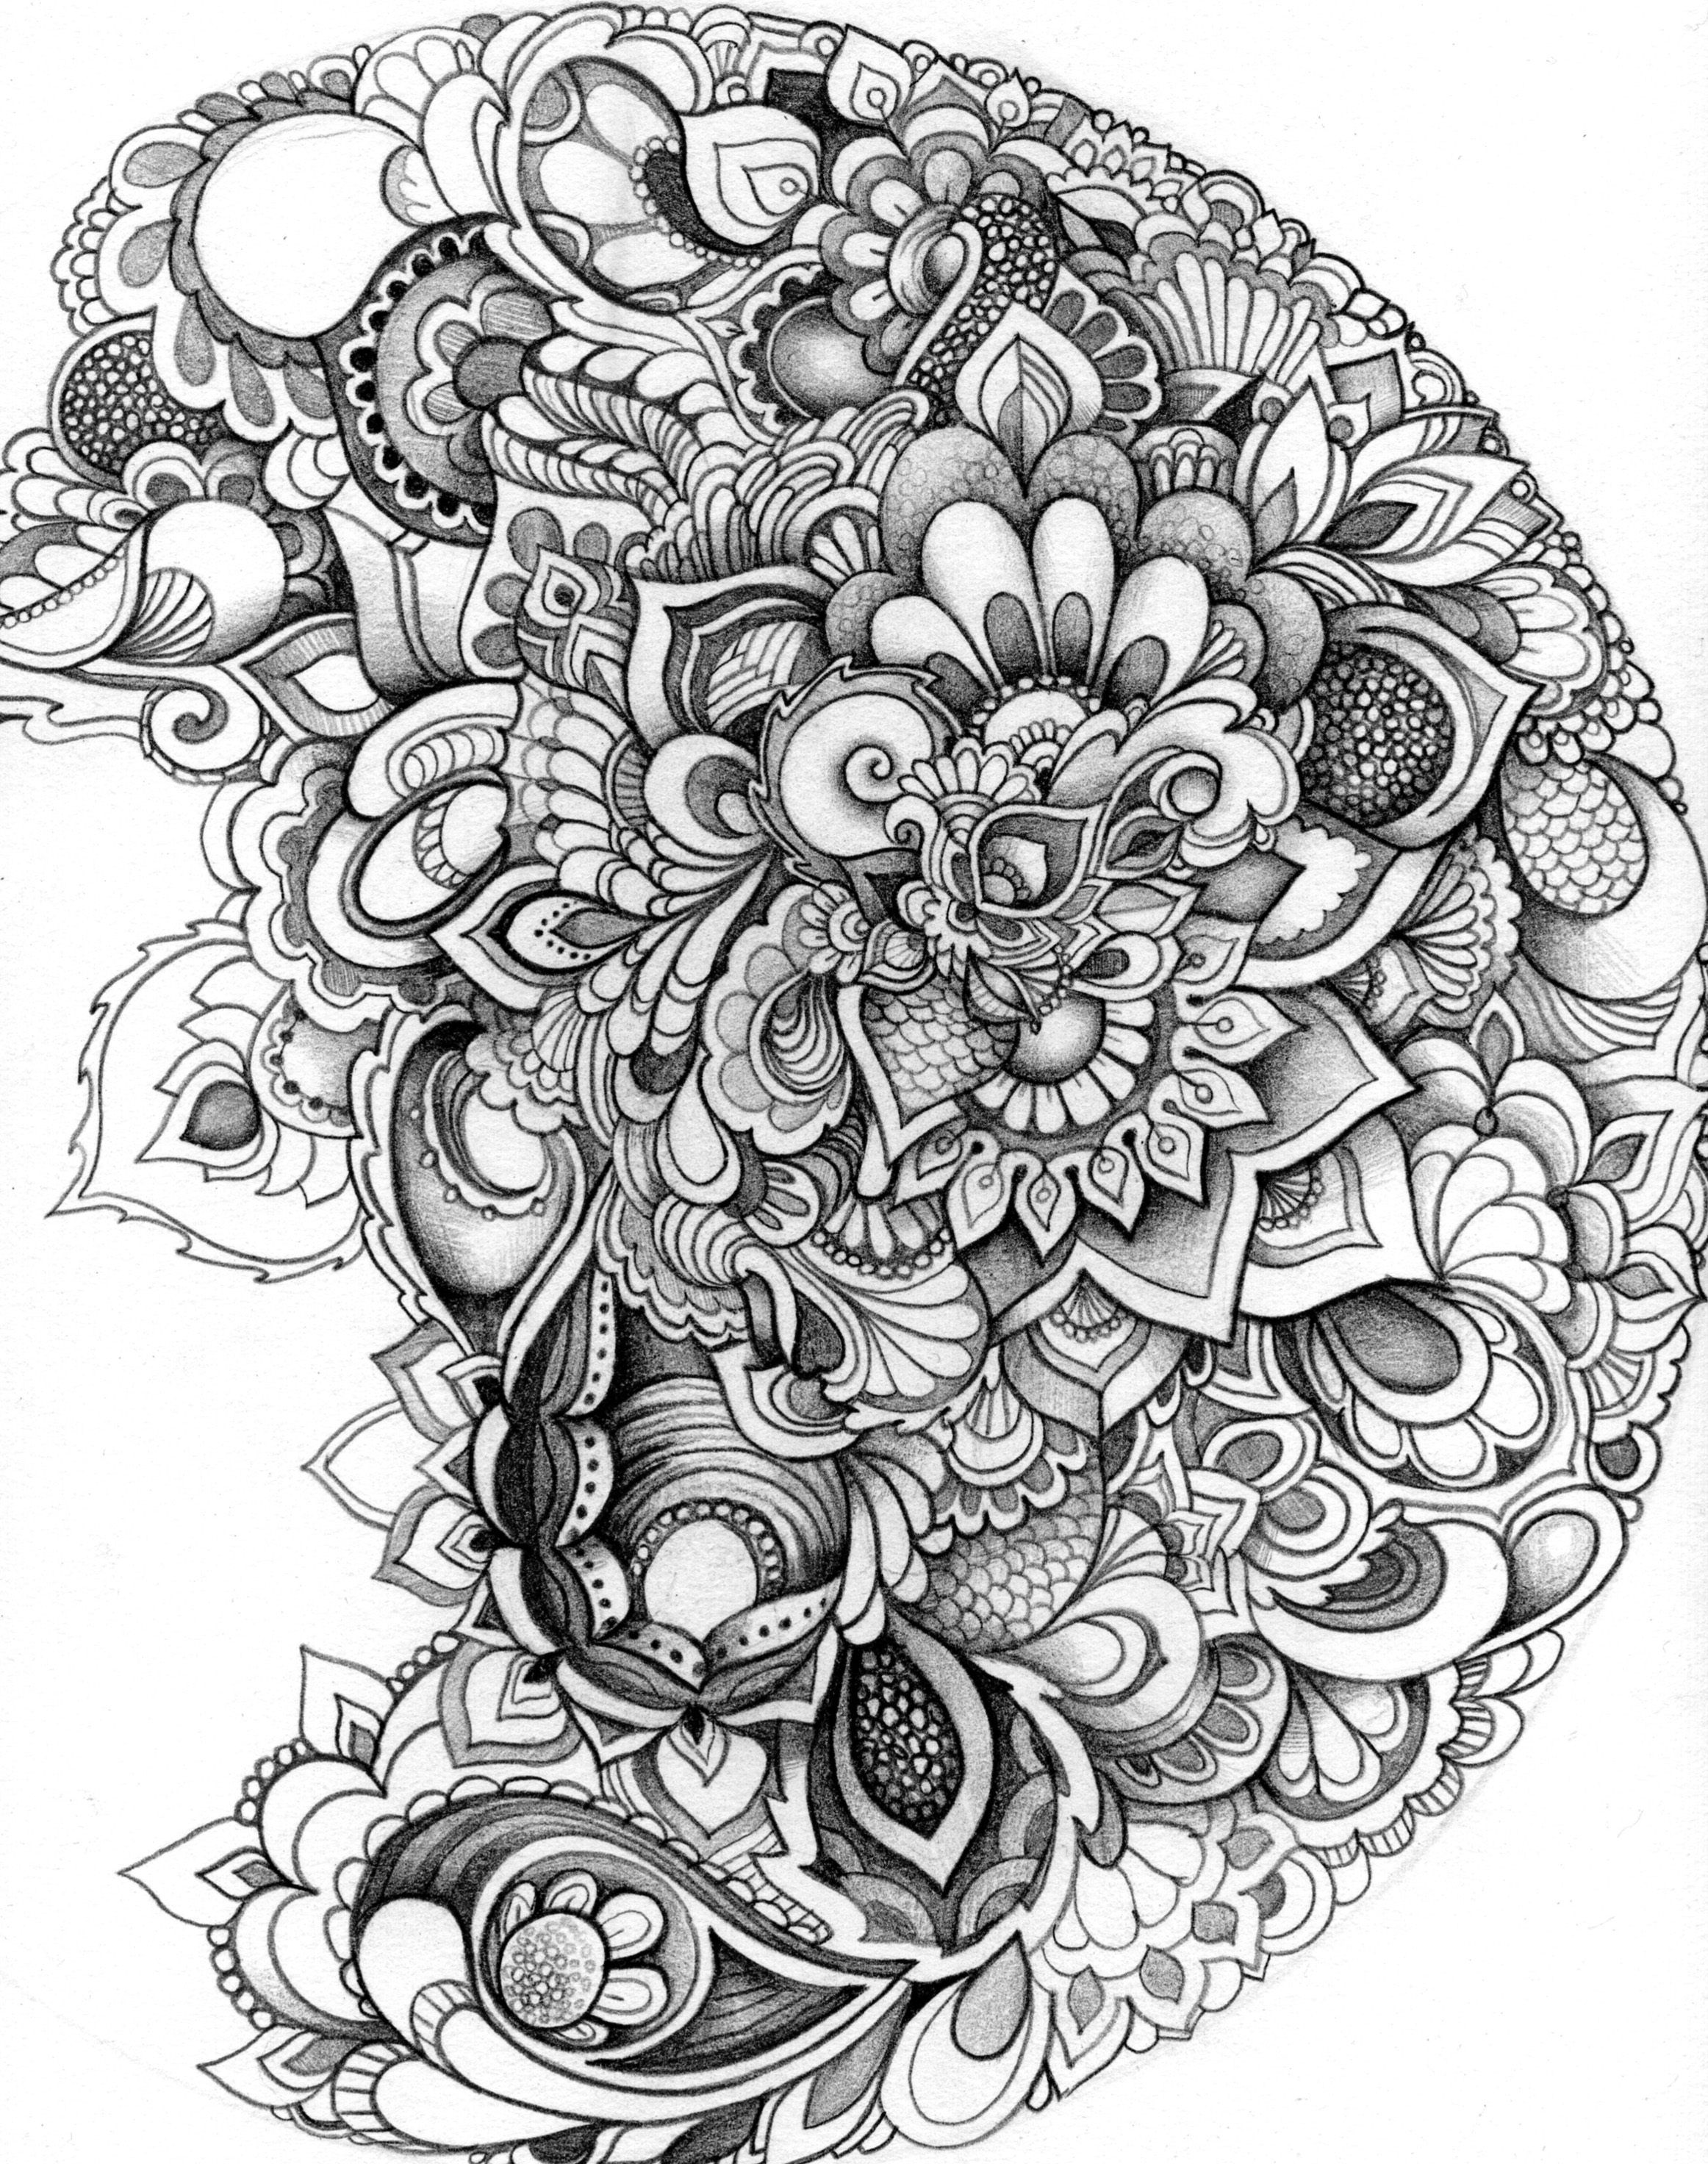 coloring pages drawings make any picture a coloring page with ipiccy ipiccy coloring pages drawings